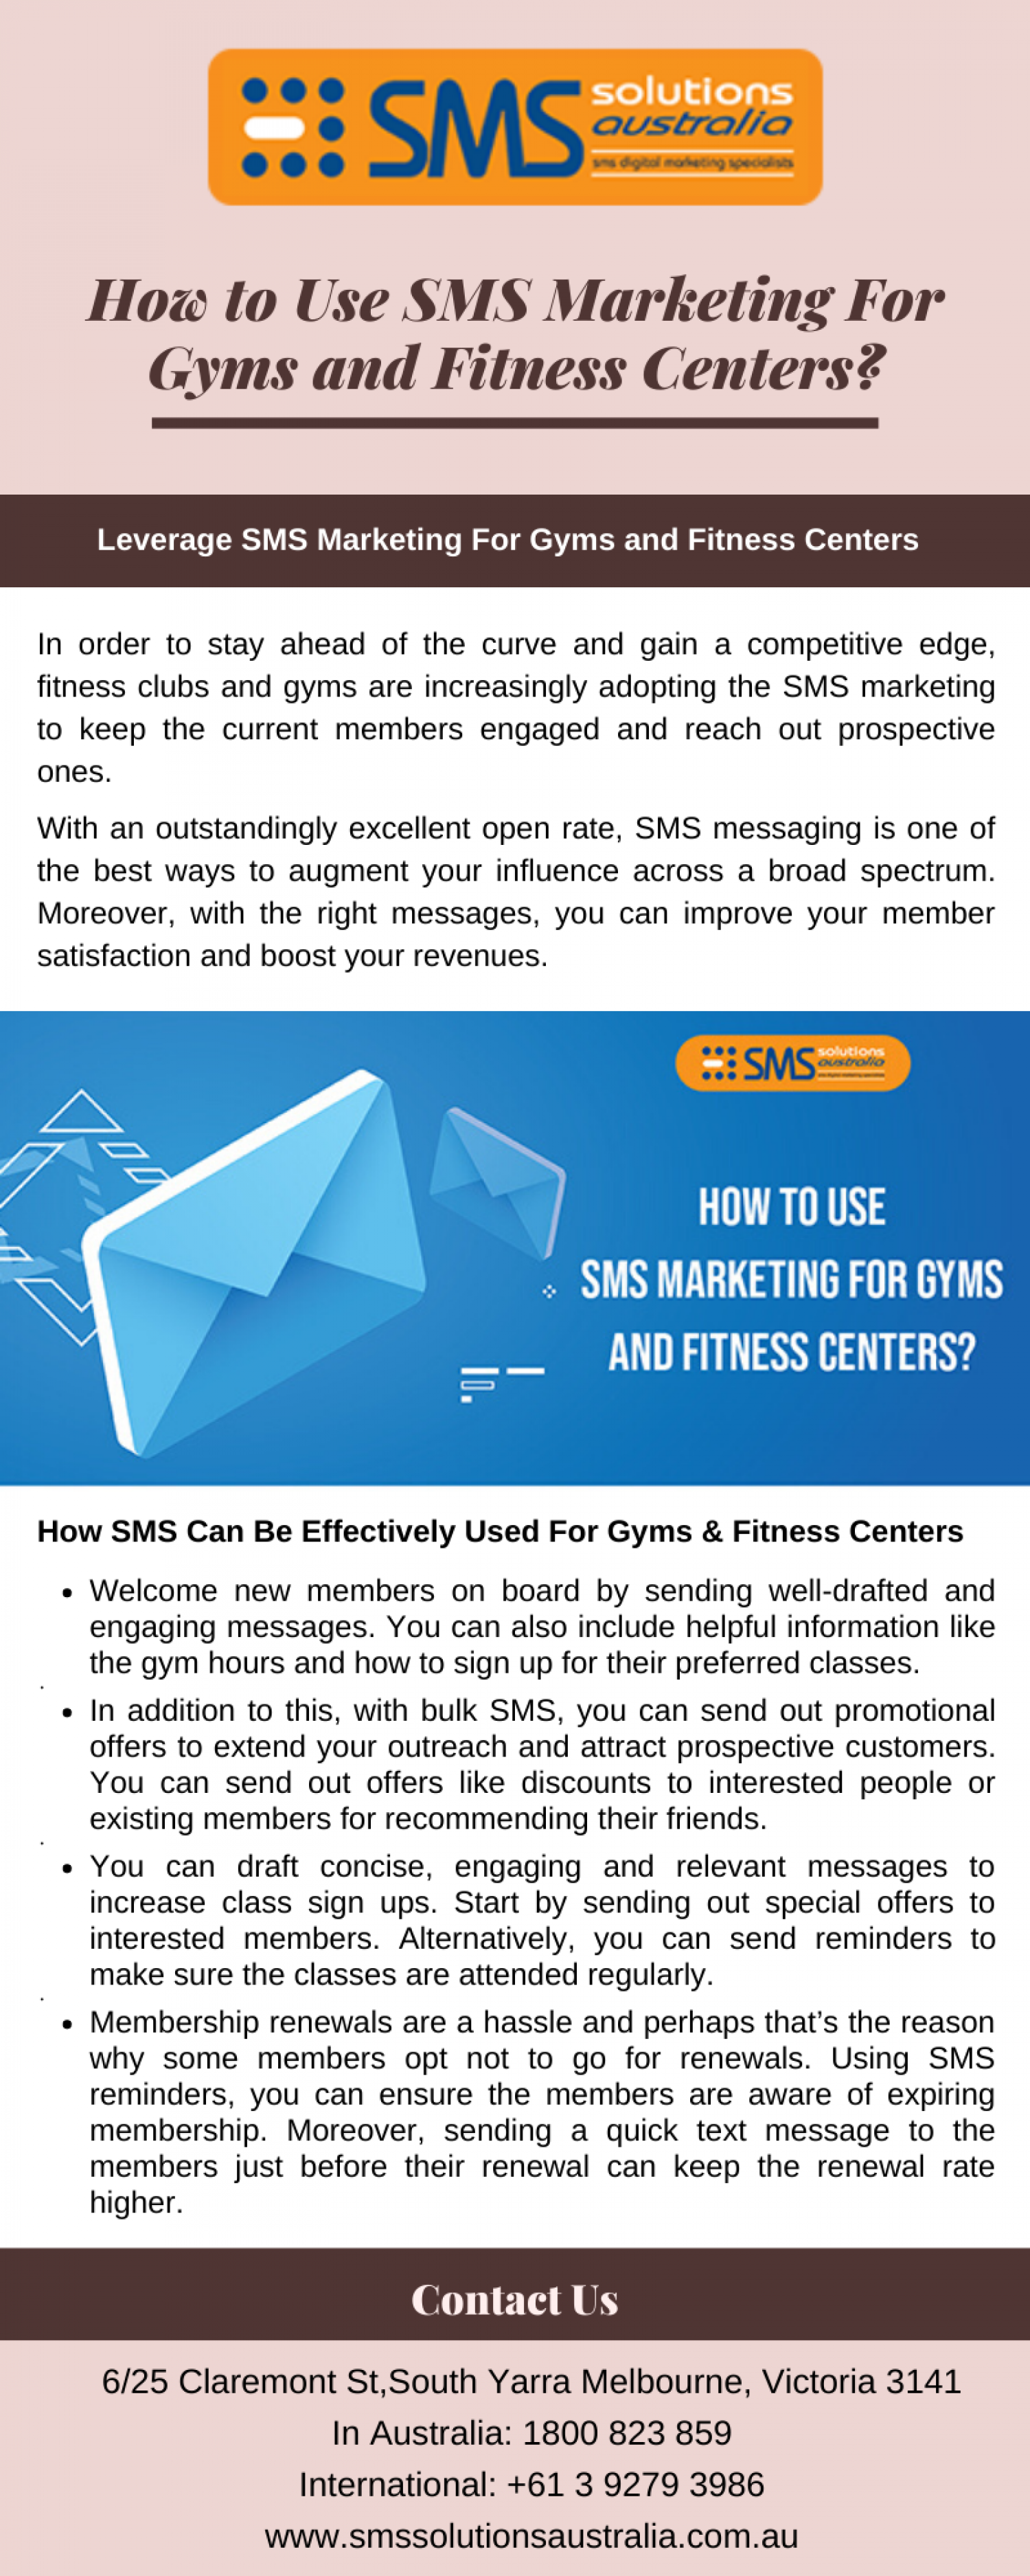 How to Use SMS Marketing For Gyms and Fitness Centers? Infographic